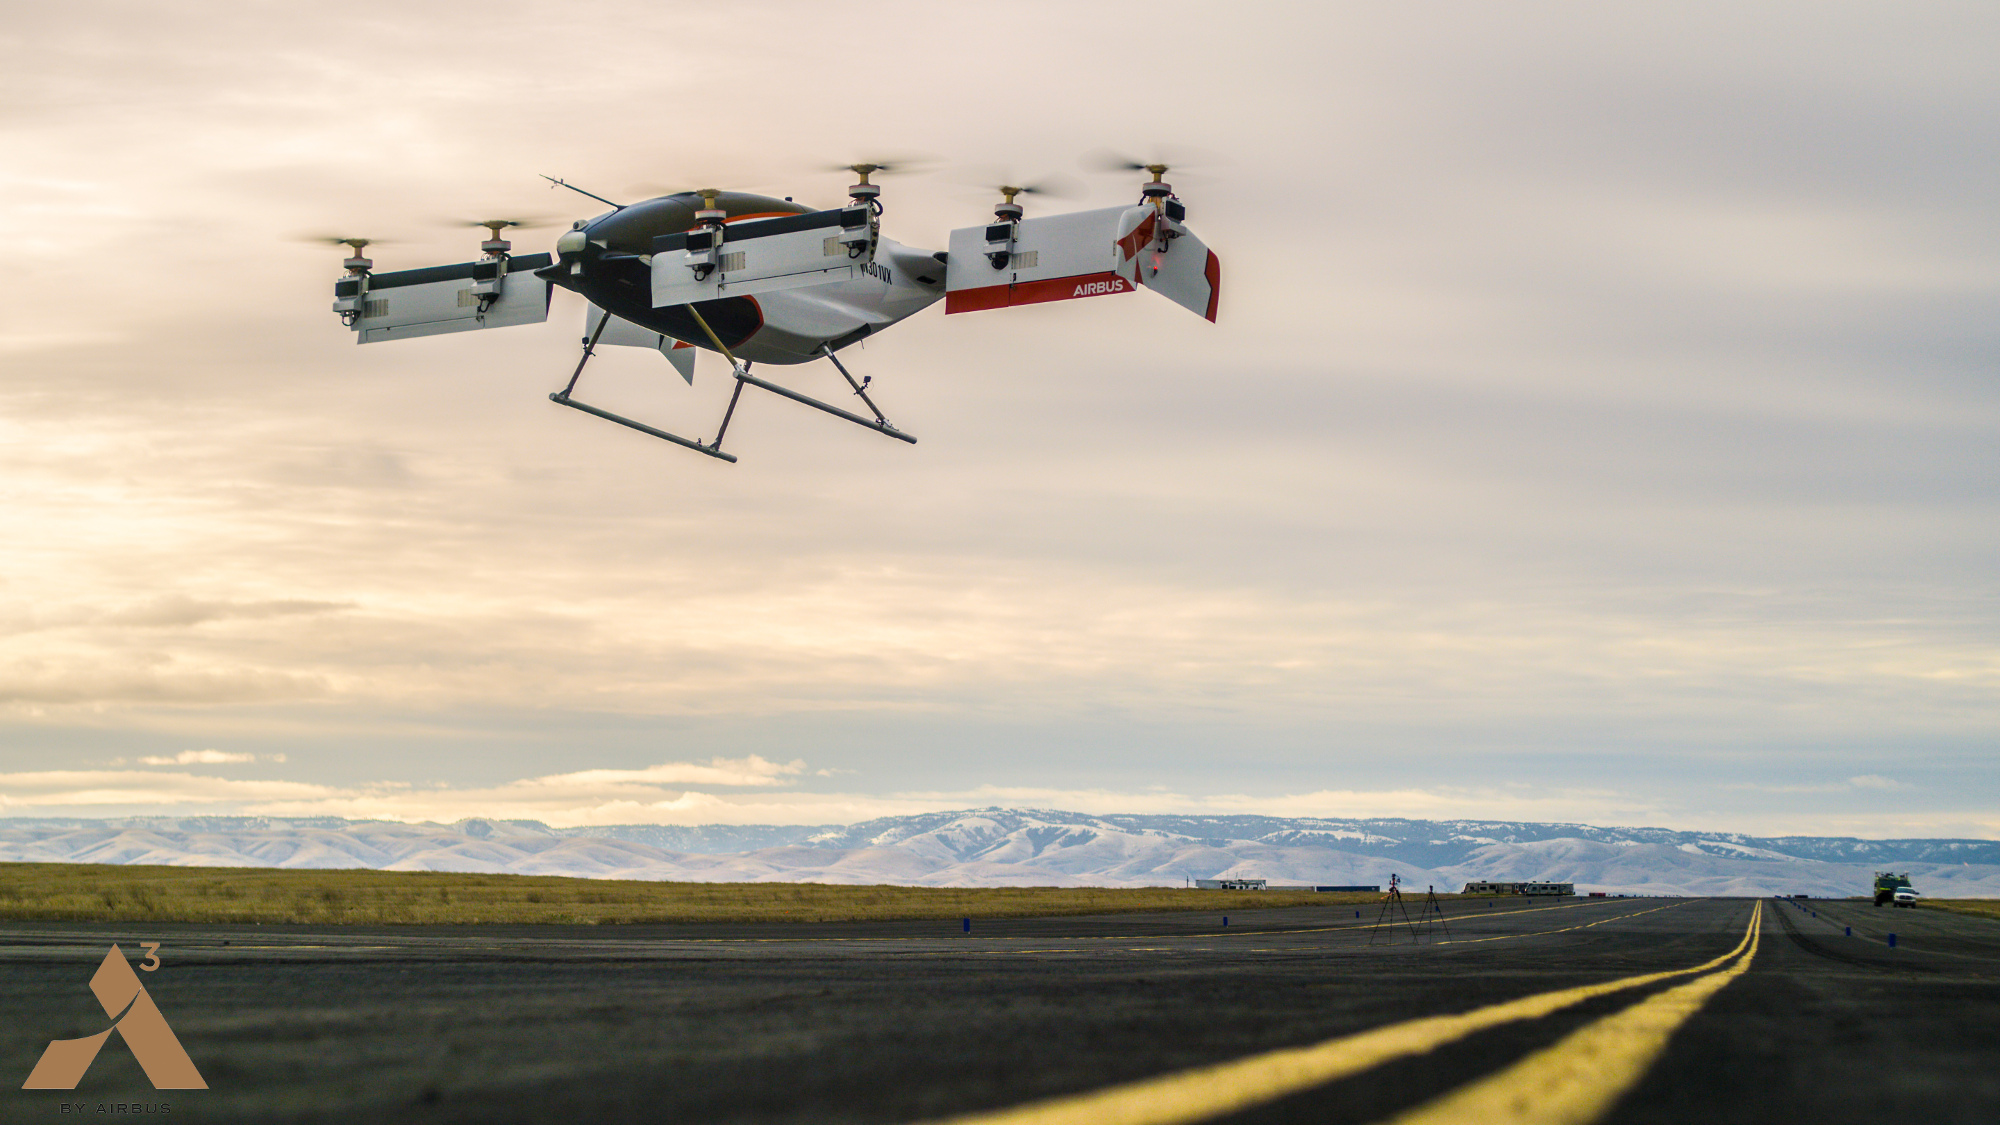 The sel-piloting air taxi takes to the skies